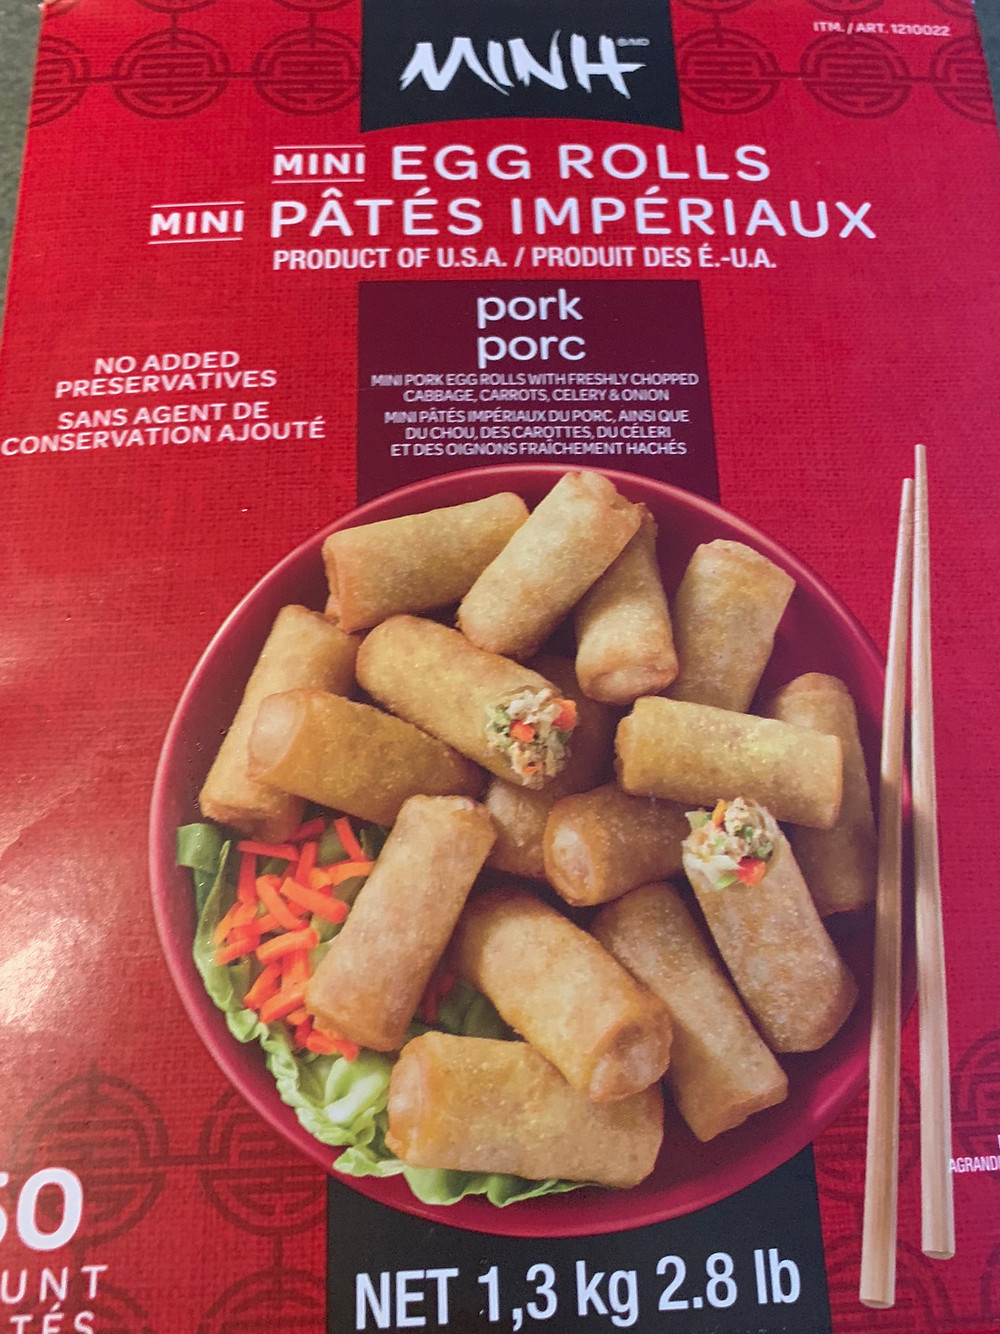 Costco Minh Mini Egg Rolls